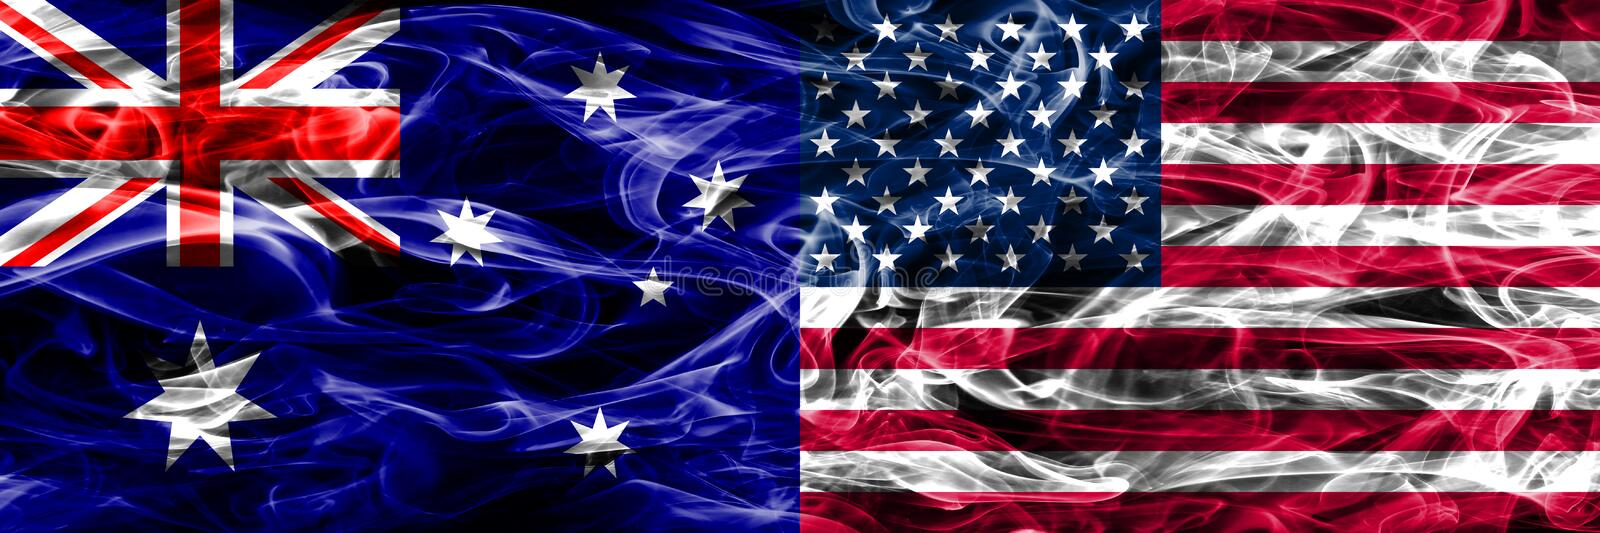 Australia vs United States of America colorful smoke flag made of thick smoke. royalty free stock images